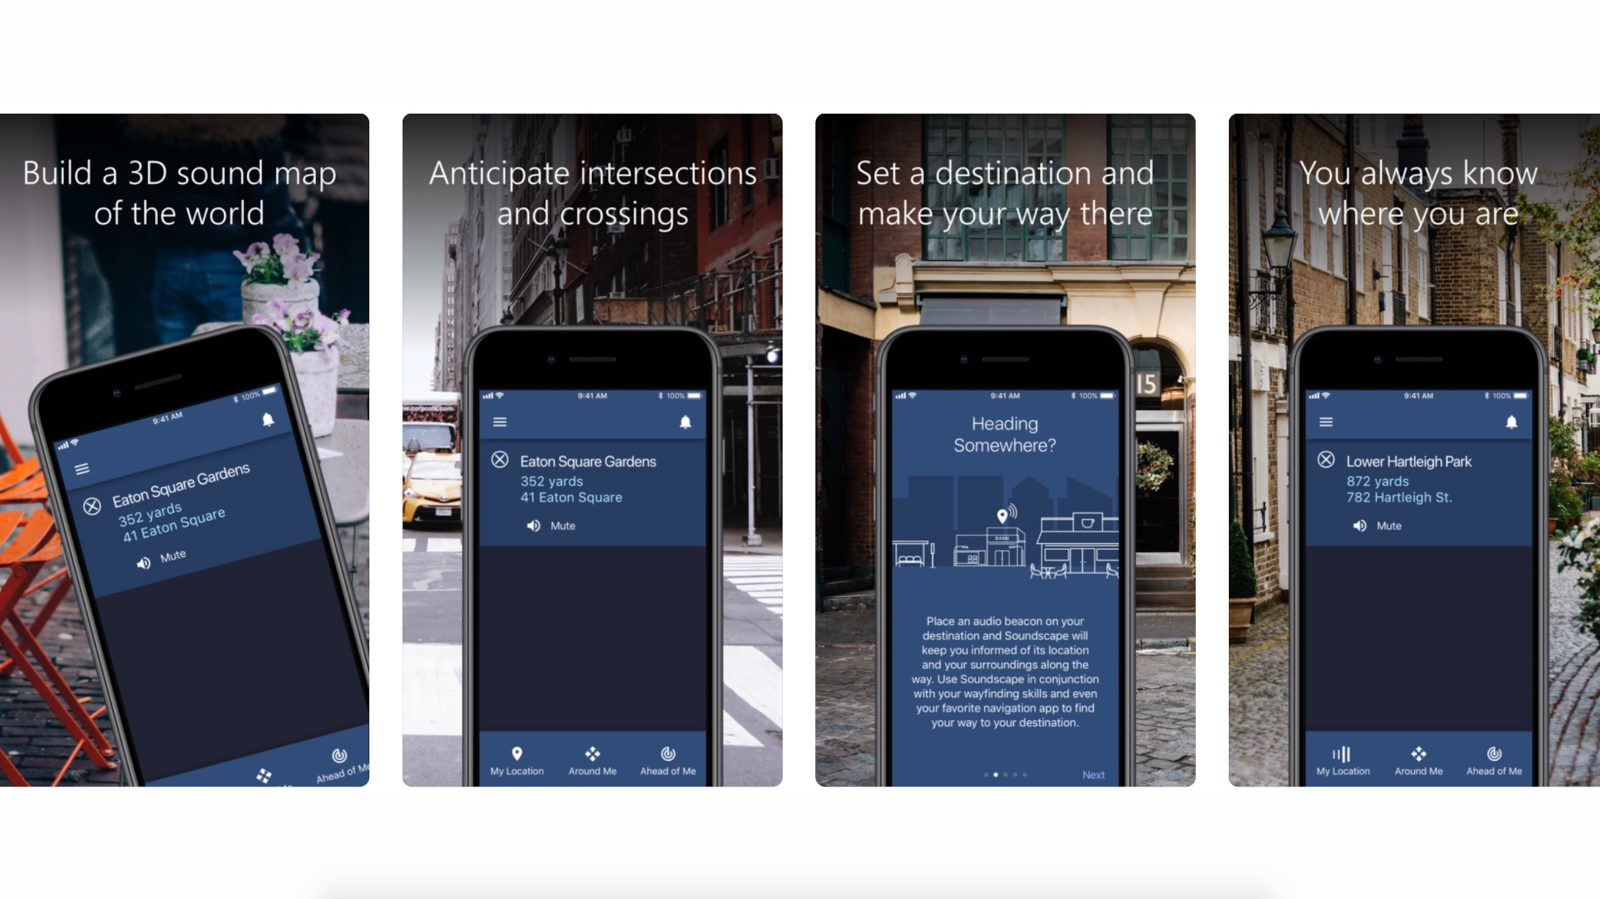 Microsoft's latest iOS accessibility app gives directions